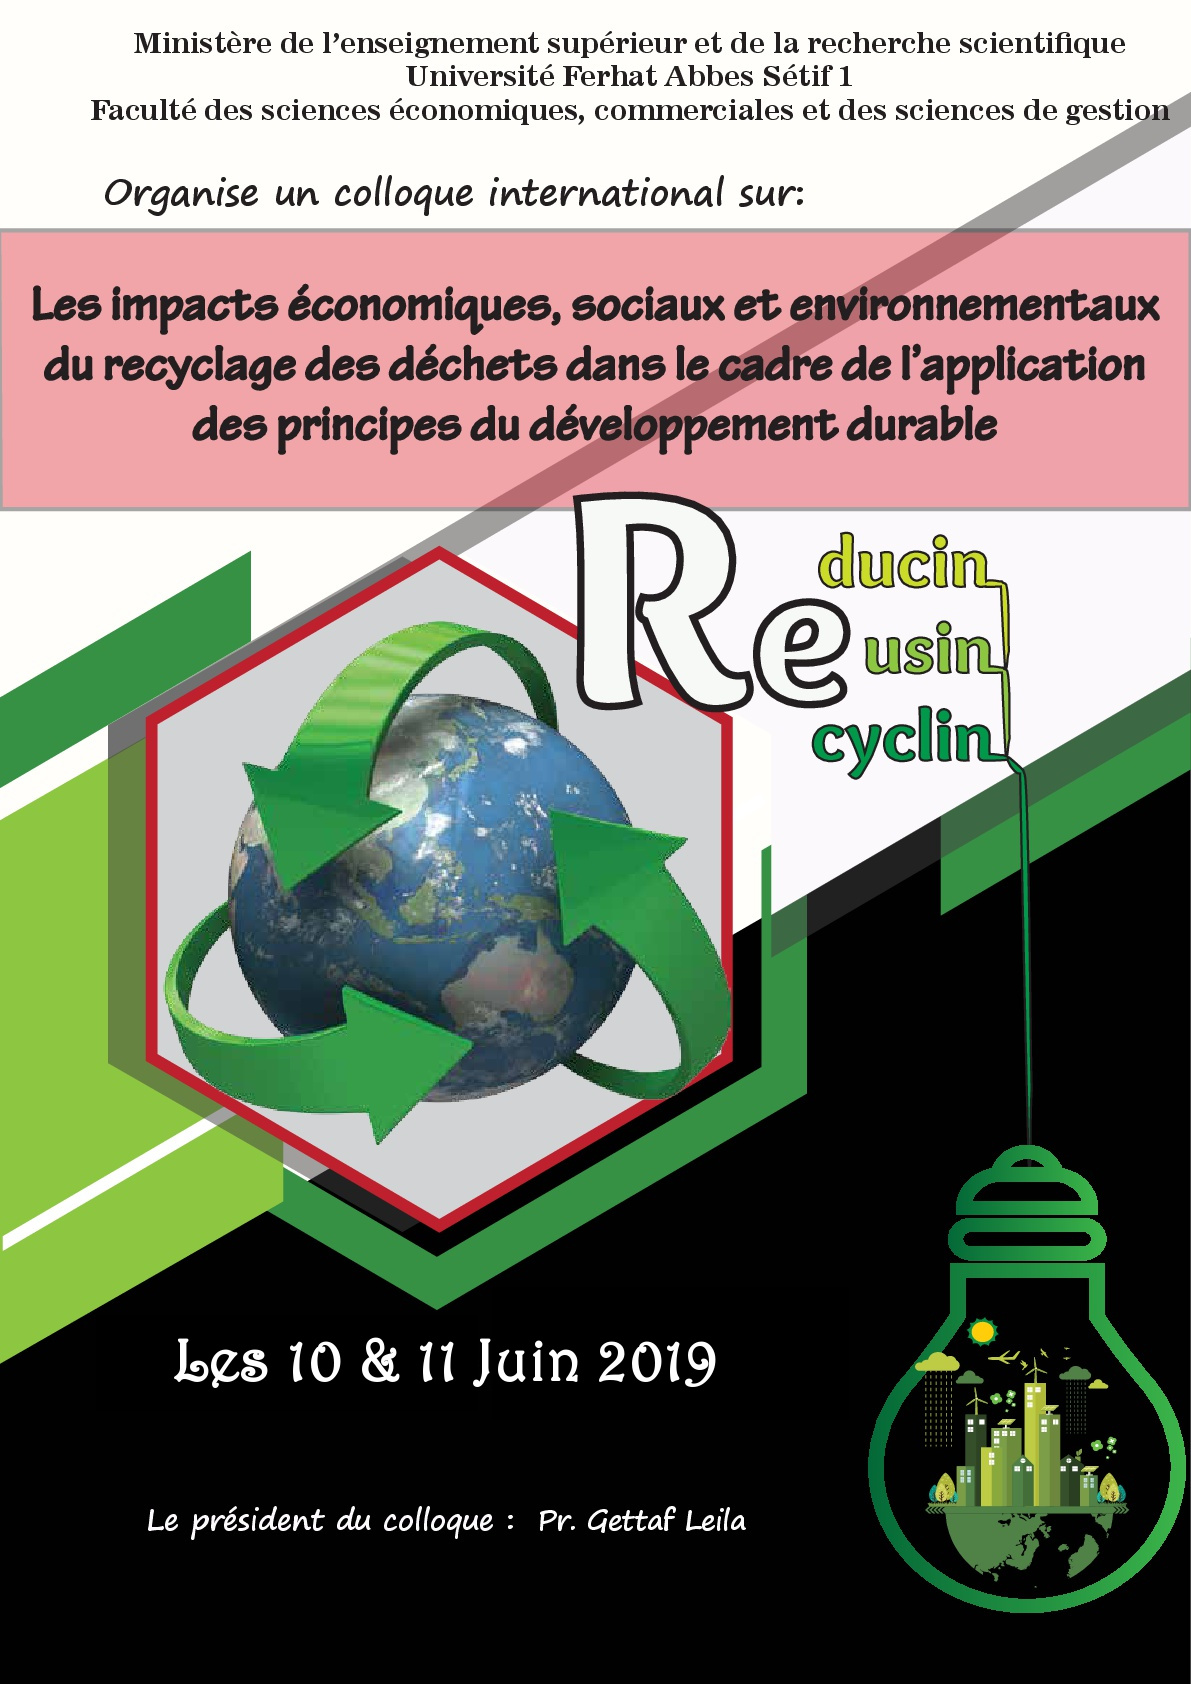 appel communication colloque recyclage 2019